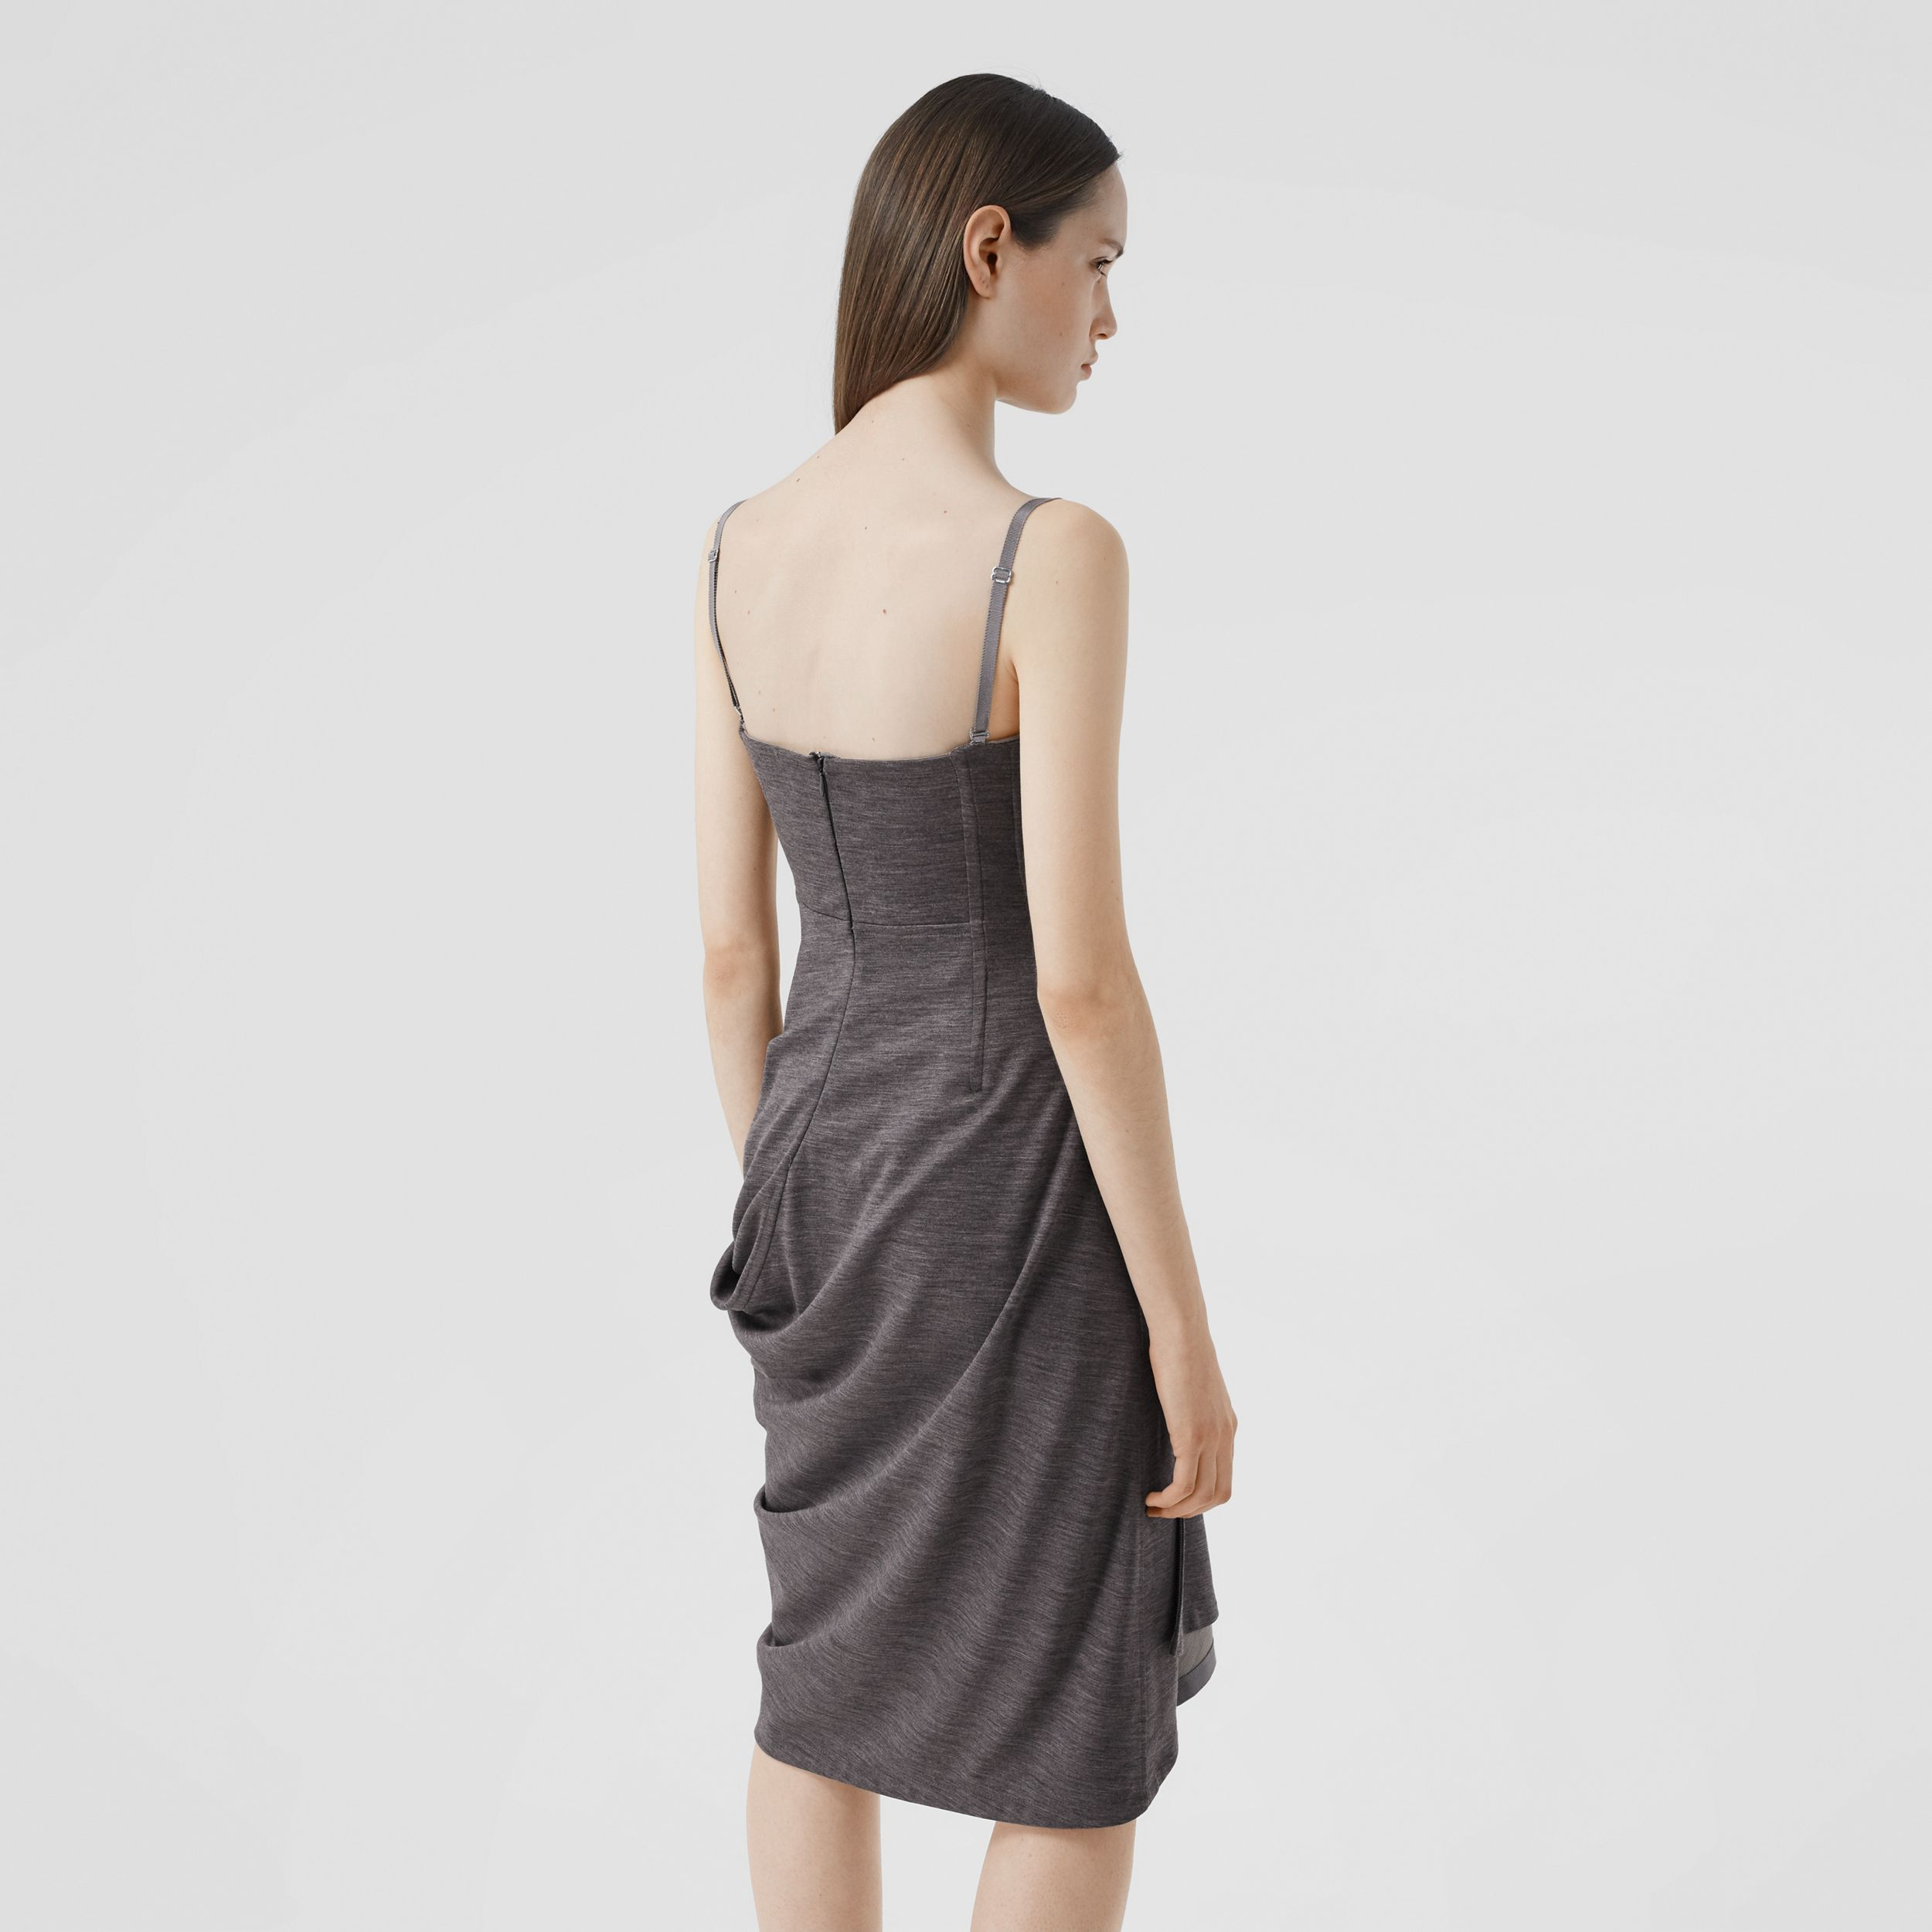 Asymmetric Technical Wool Corset Dress in Charcoal Grey - Women | Burberry Australia - 3